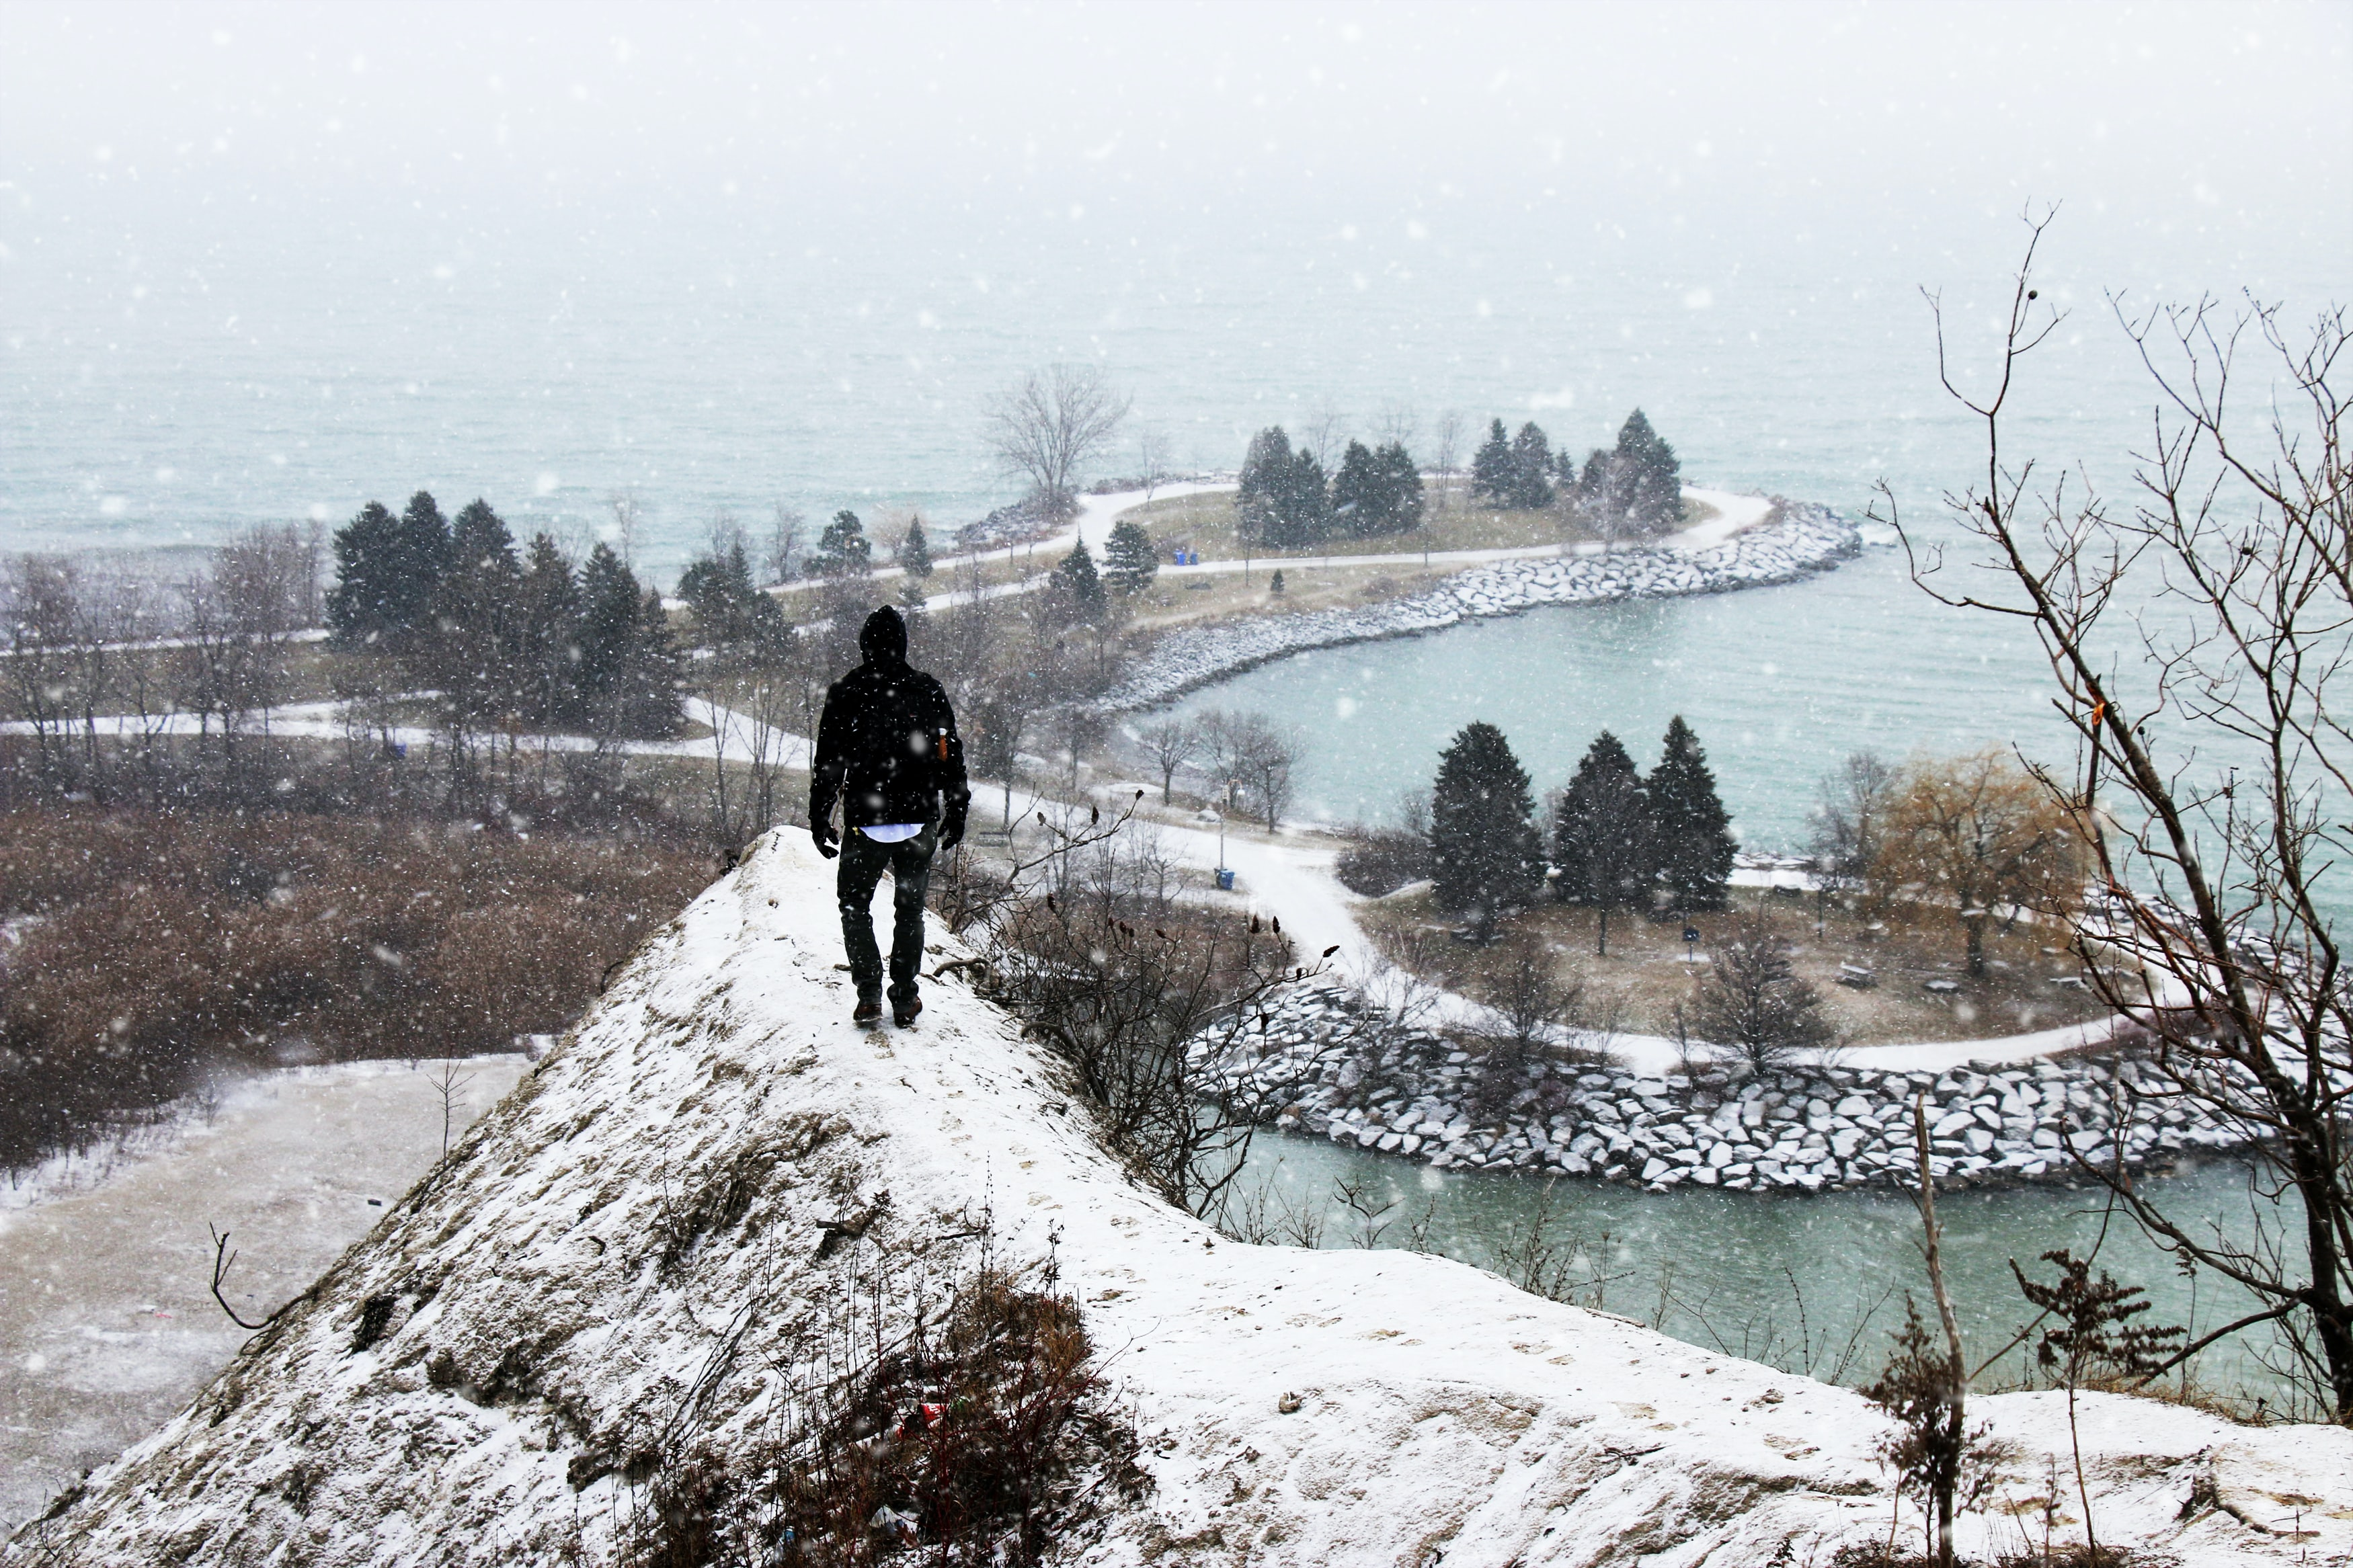 A person walking on a narrow path at Scarborough Bluffs